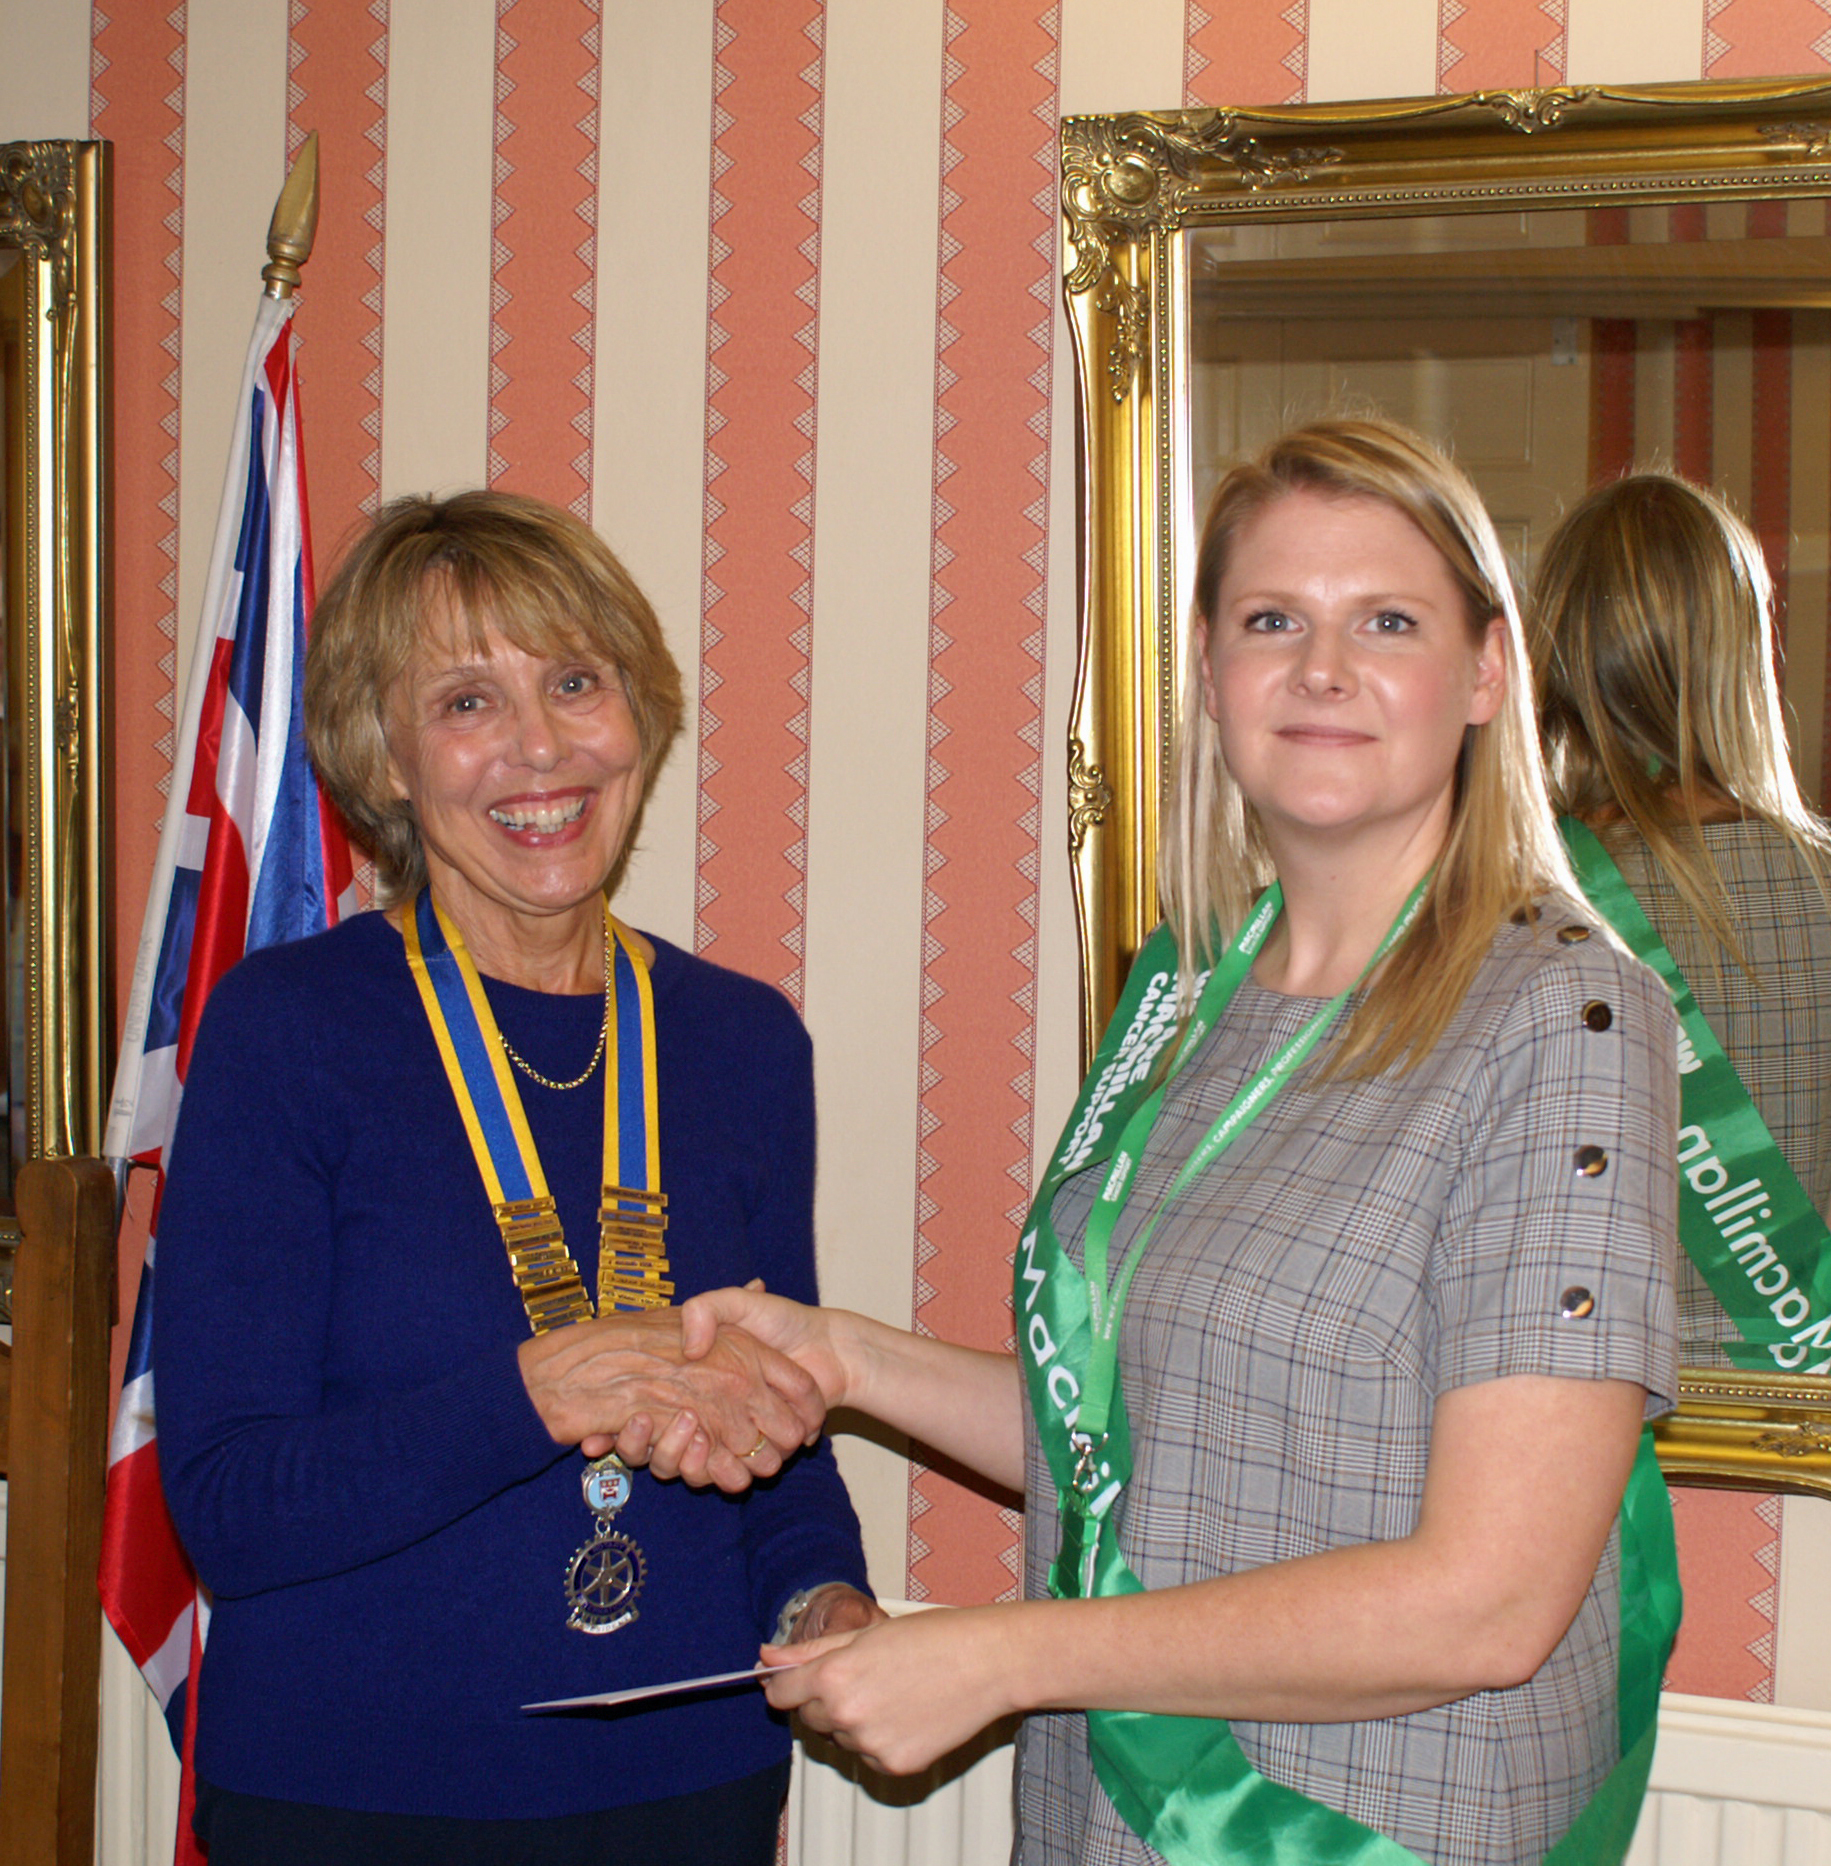 President of Pickering and District Rotary Club Sue Harris hands over a cheque for £700 to Clara White, from Macmillan Cancer Support